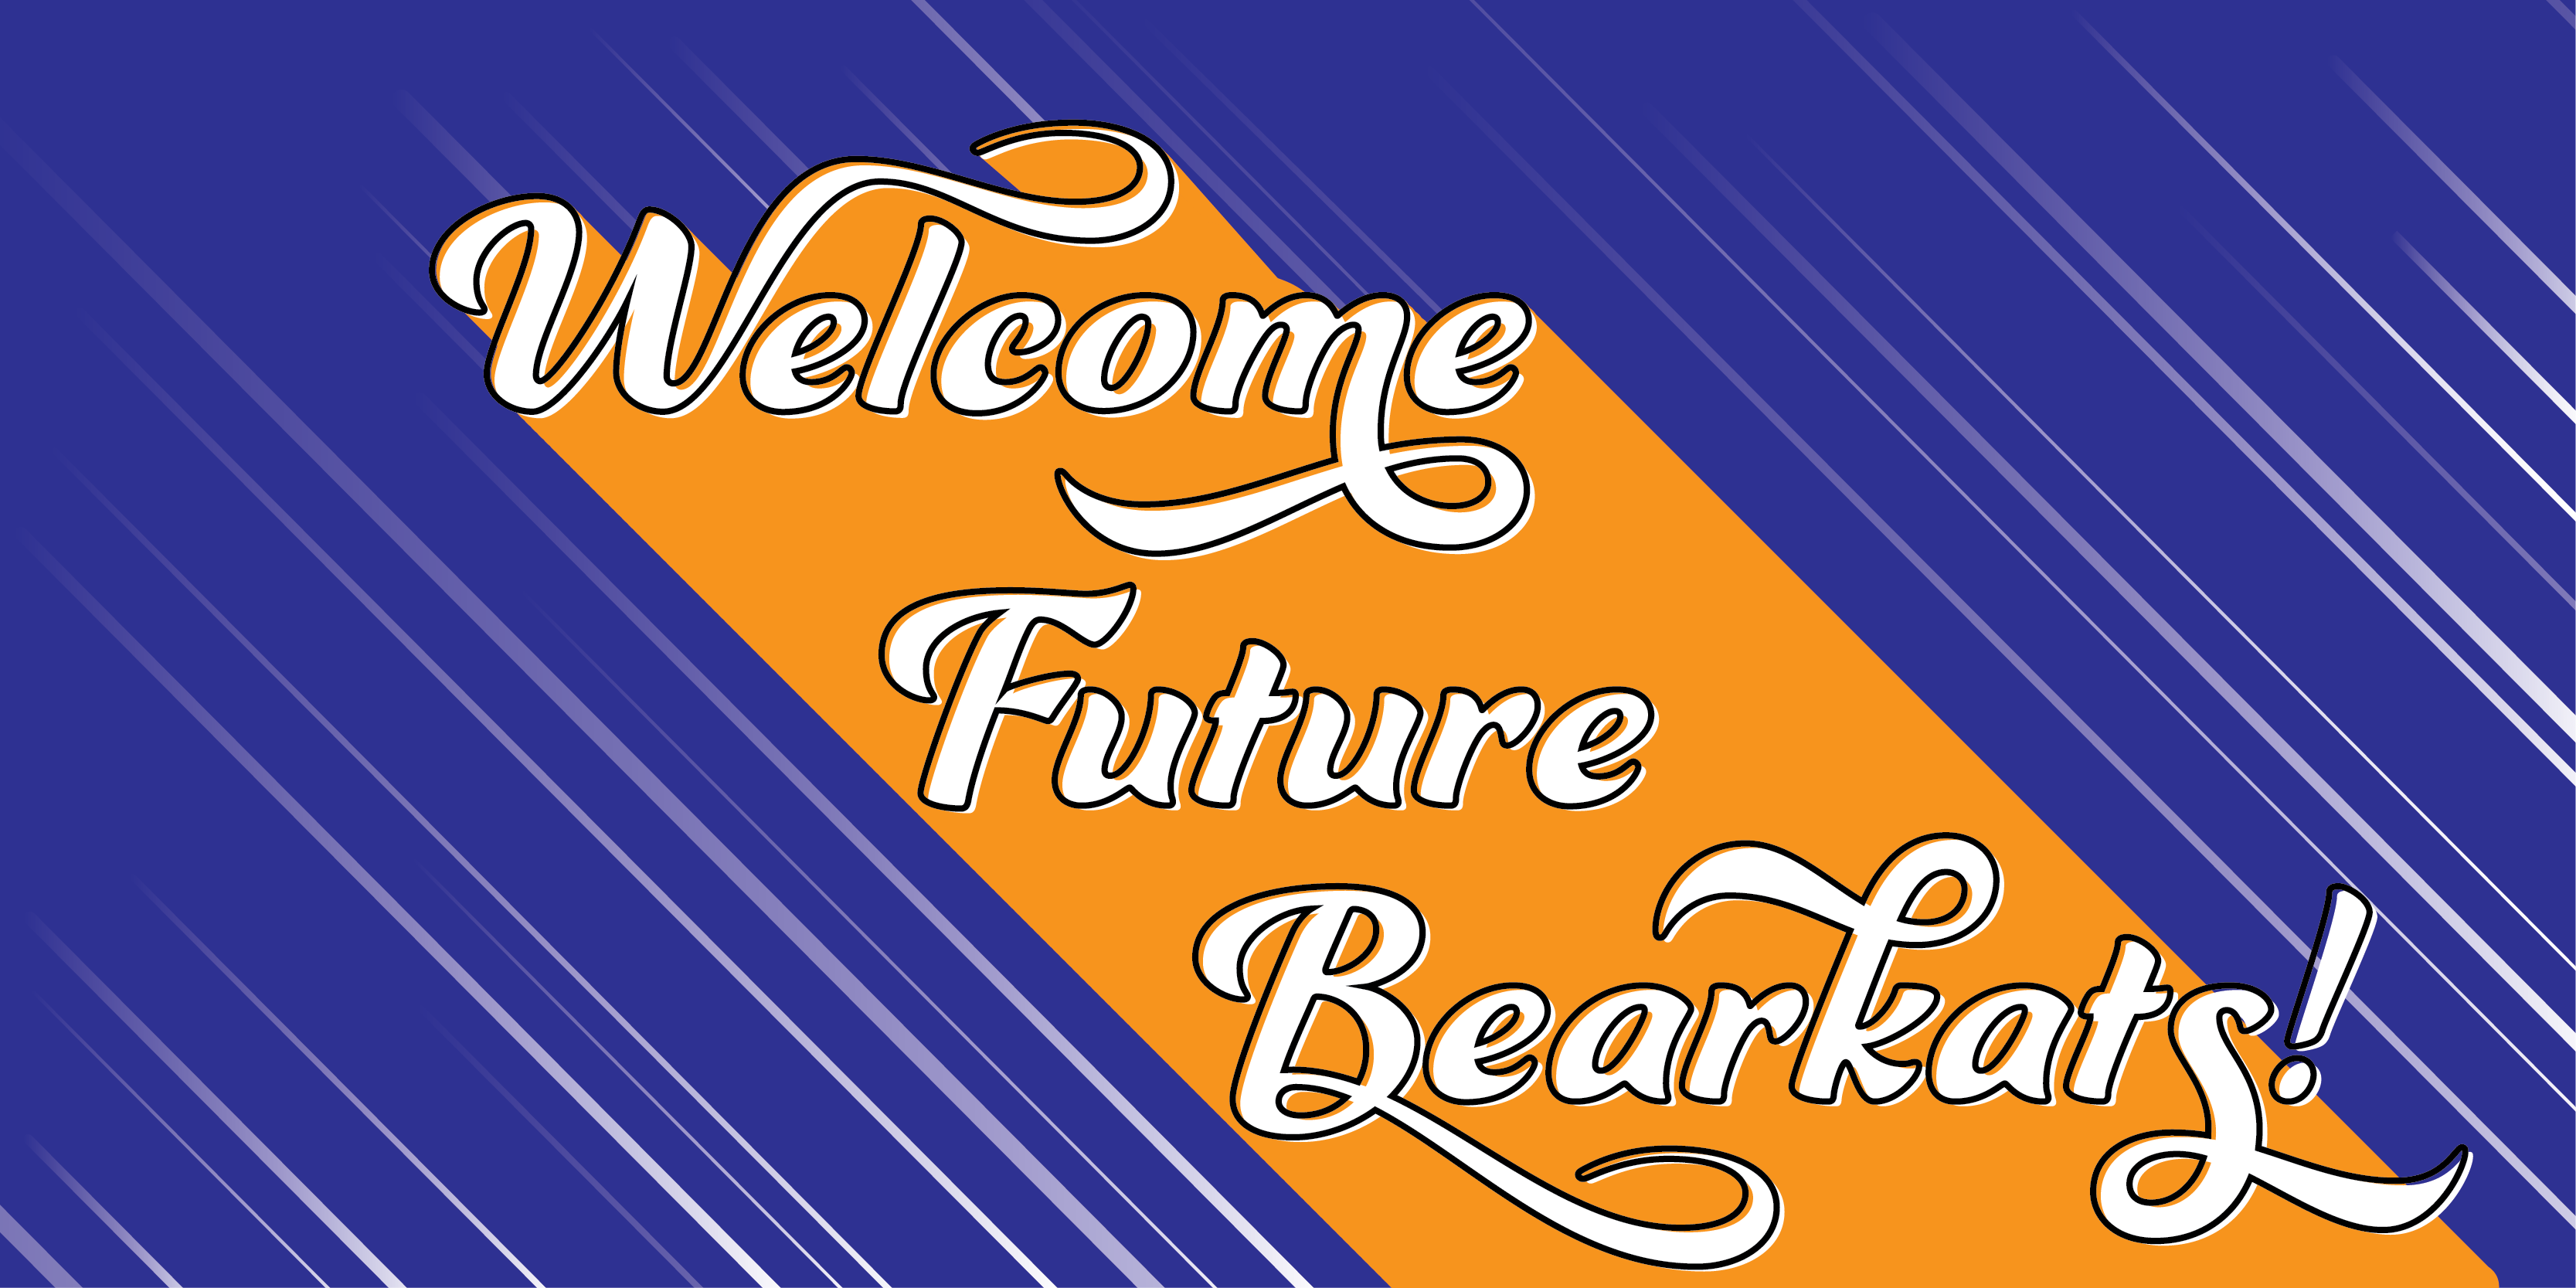 Welcome Future Bearkats!